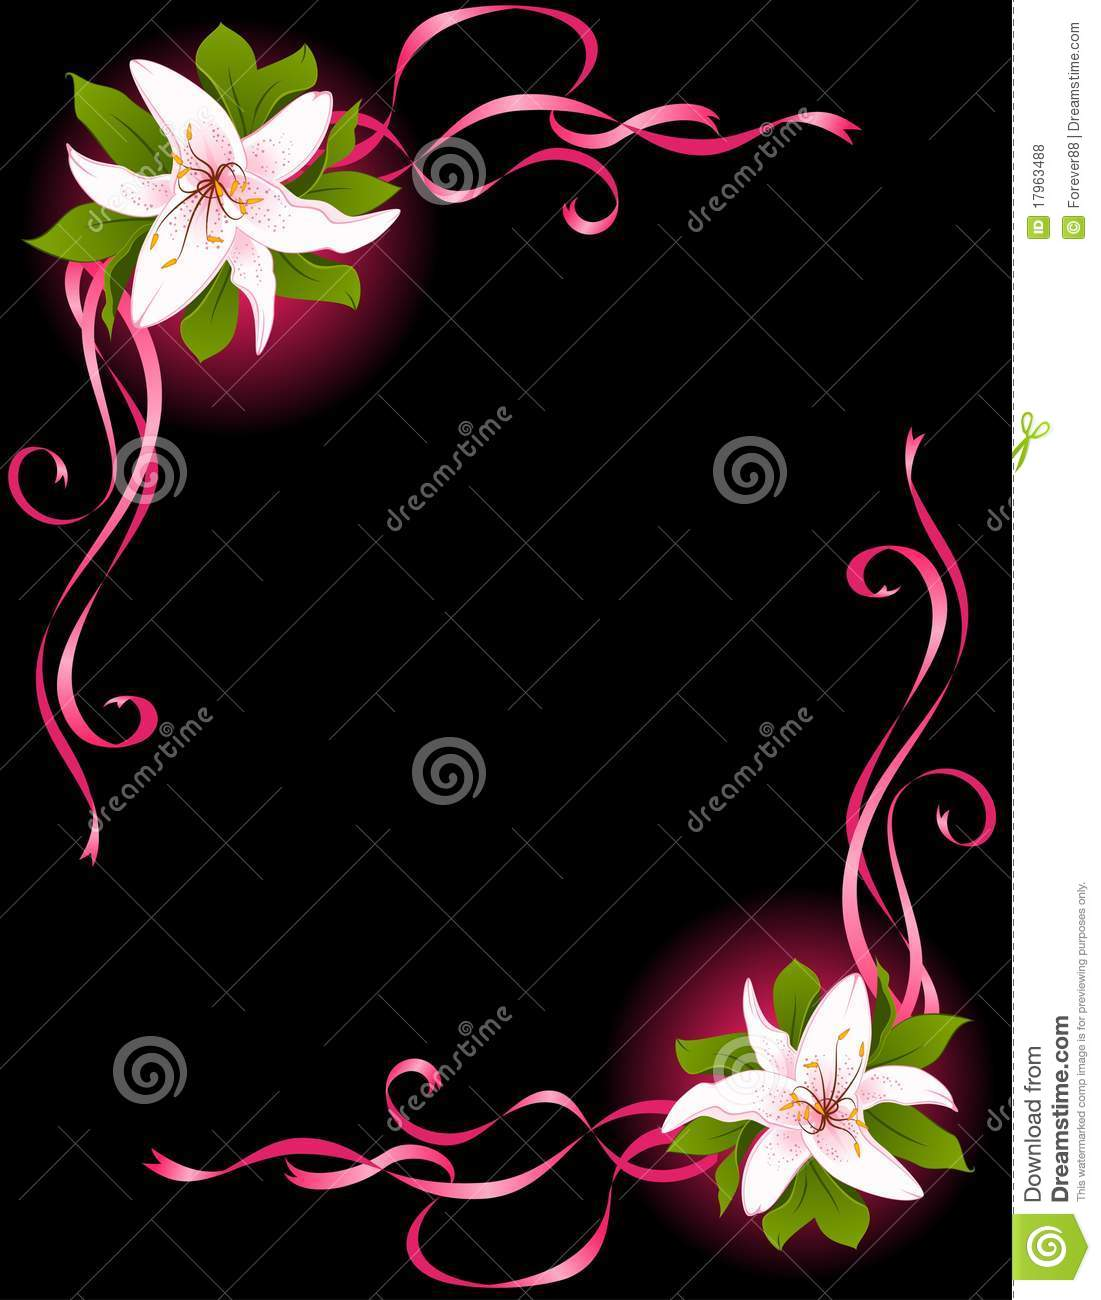 Beauty In Frame: Beautiful Frame With Lily Royalty Free Stock Photos